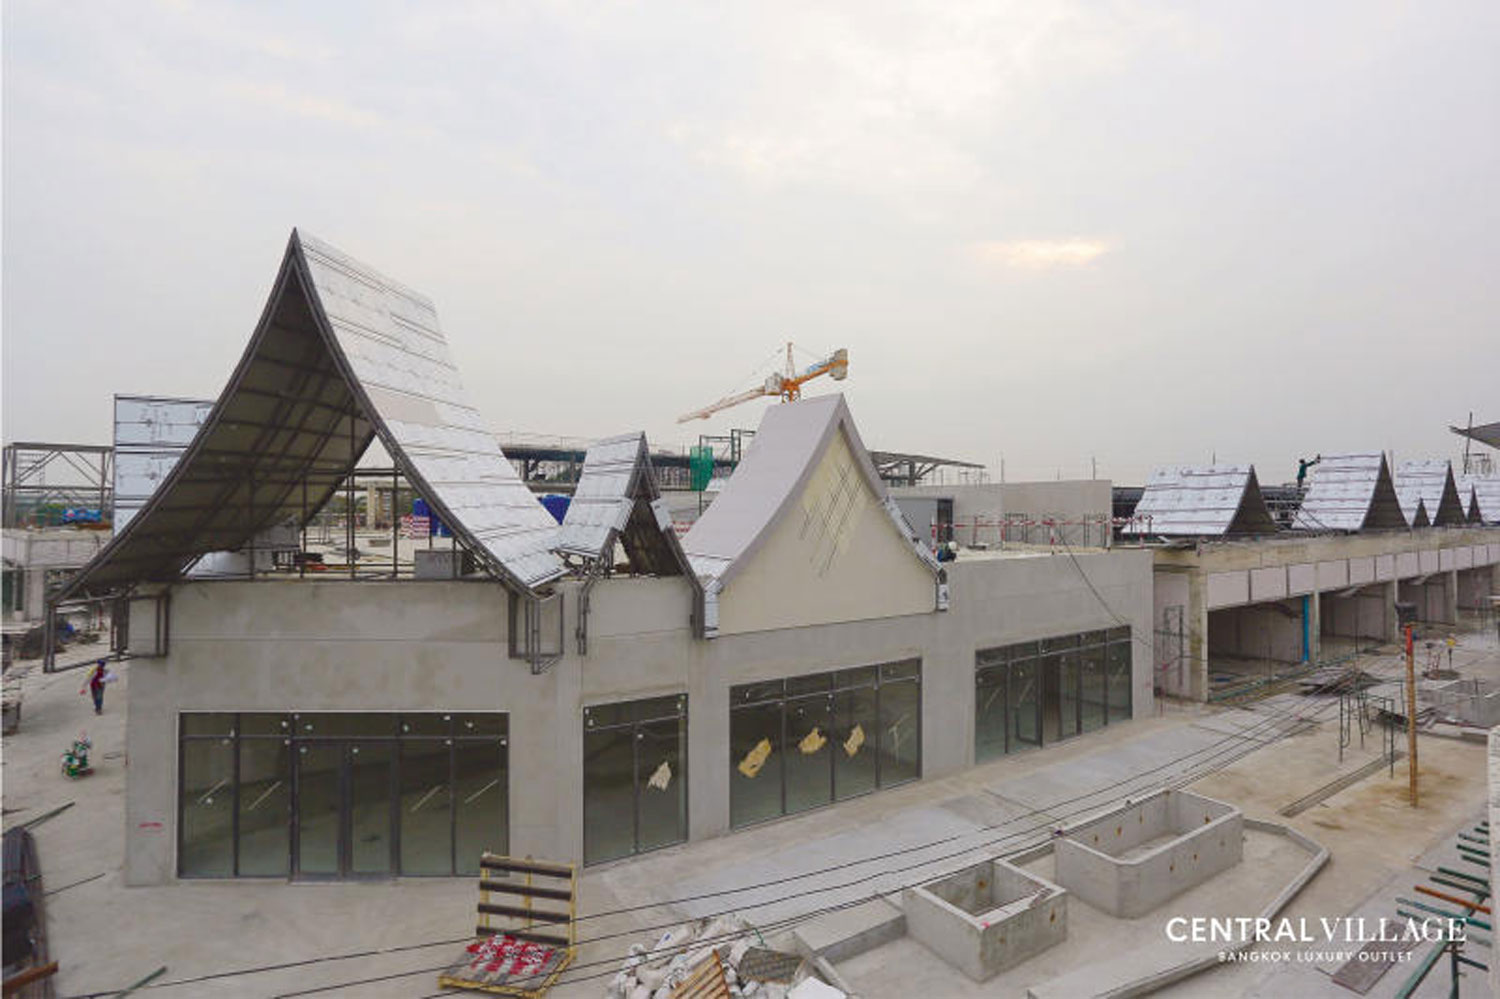 Central Village, which bills itself as Thailand's first international luxury shopping outlet, is nearing completion alongside Suvarnabhumi airport in Samut Prakan province. But the developer never received land-use approval. (Photo supplied)